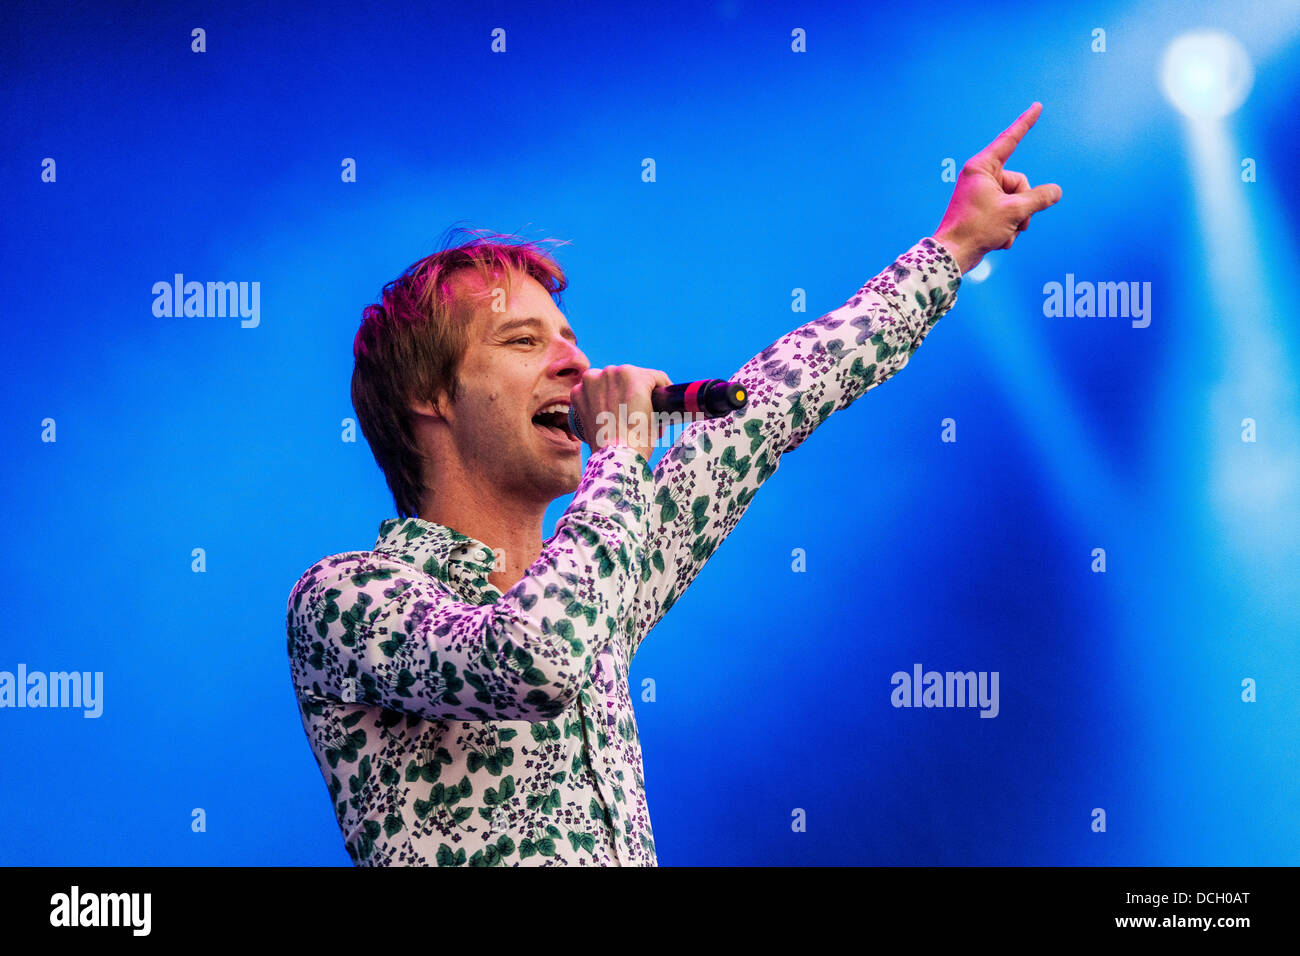 Remenham, Henley-on-Thames, Oxfordshire, UK. 17 August 2013. English pop singer Chesney Hawkes performs on-stage - Stock Image